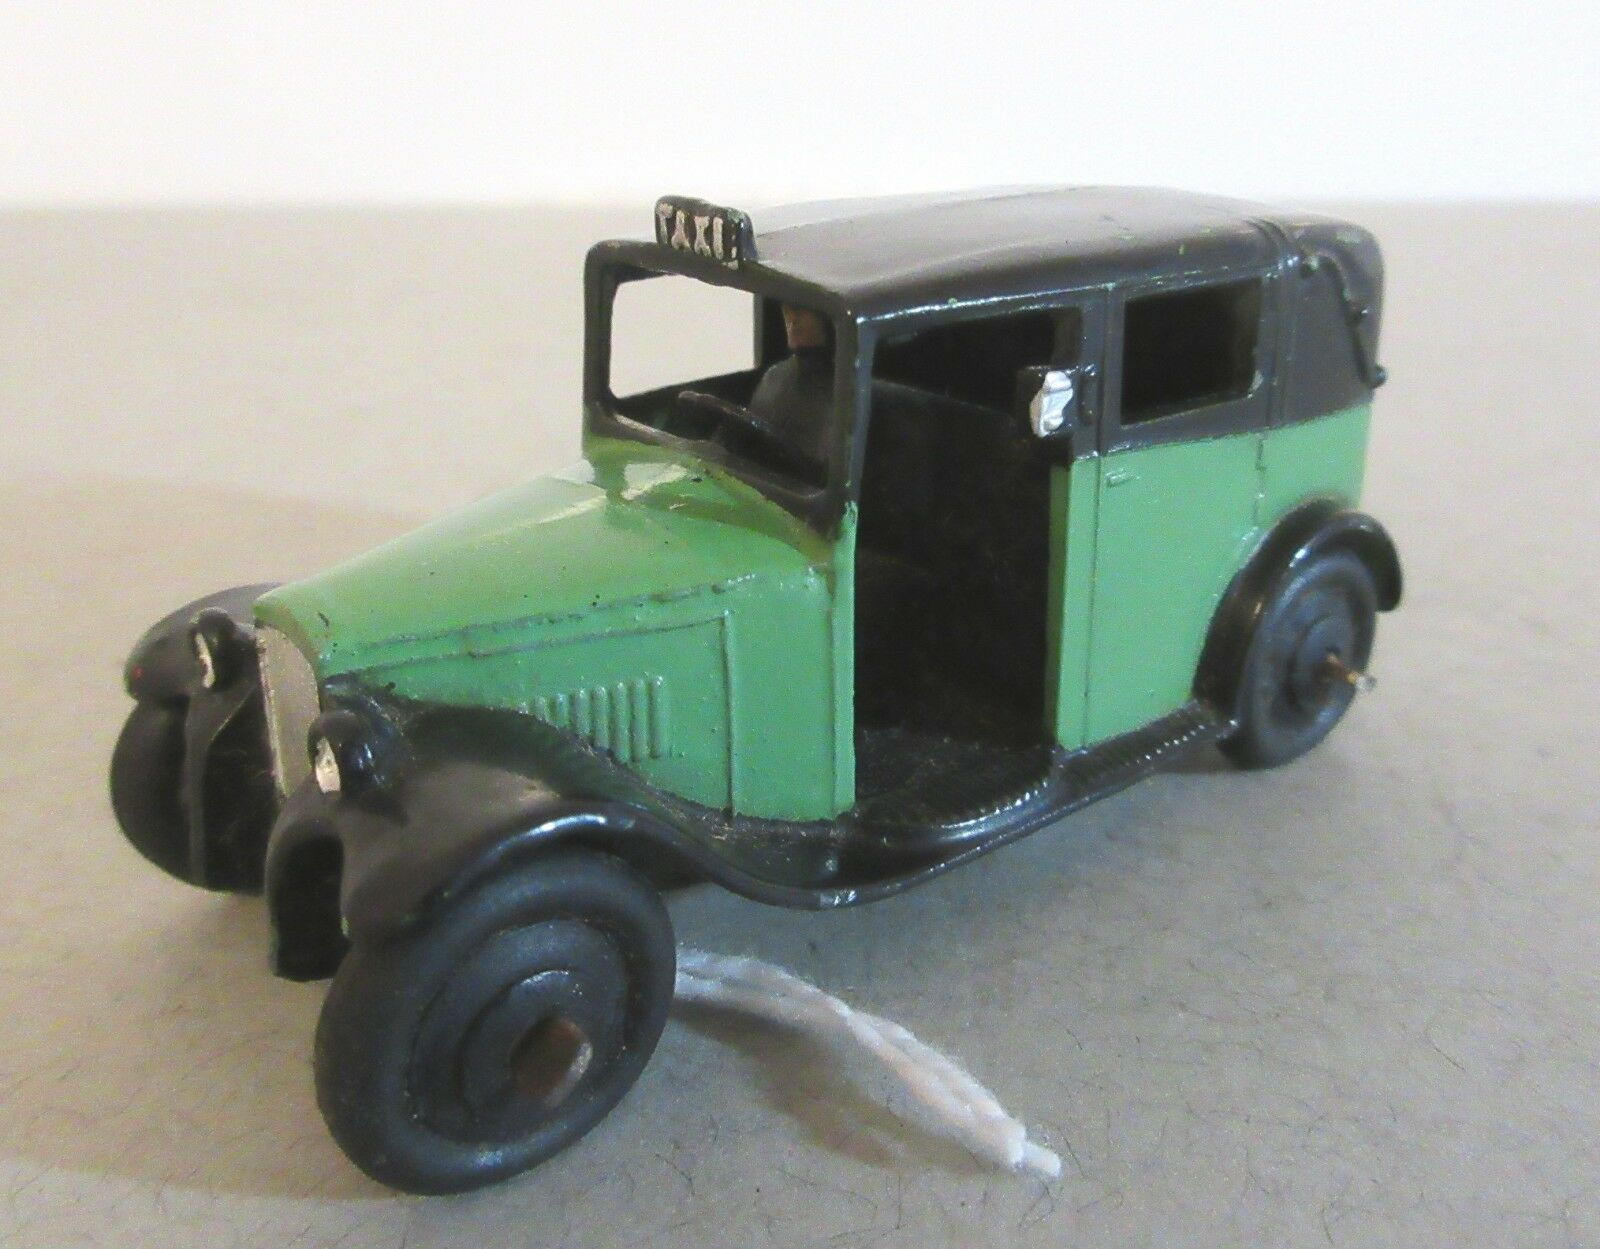 Early Dinky Juguetes London Taxis Taxi Con Driver-Dinky Juguetes transporte público